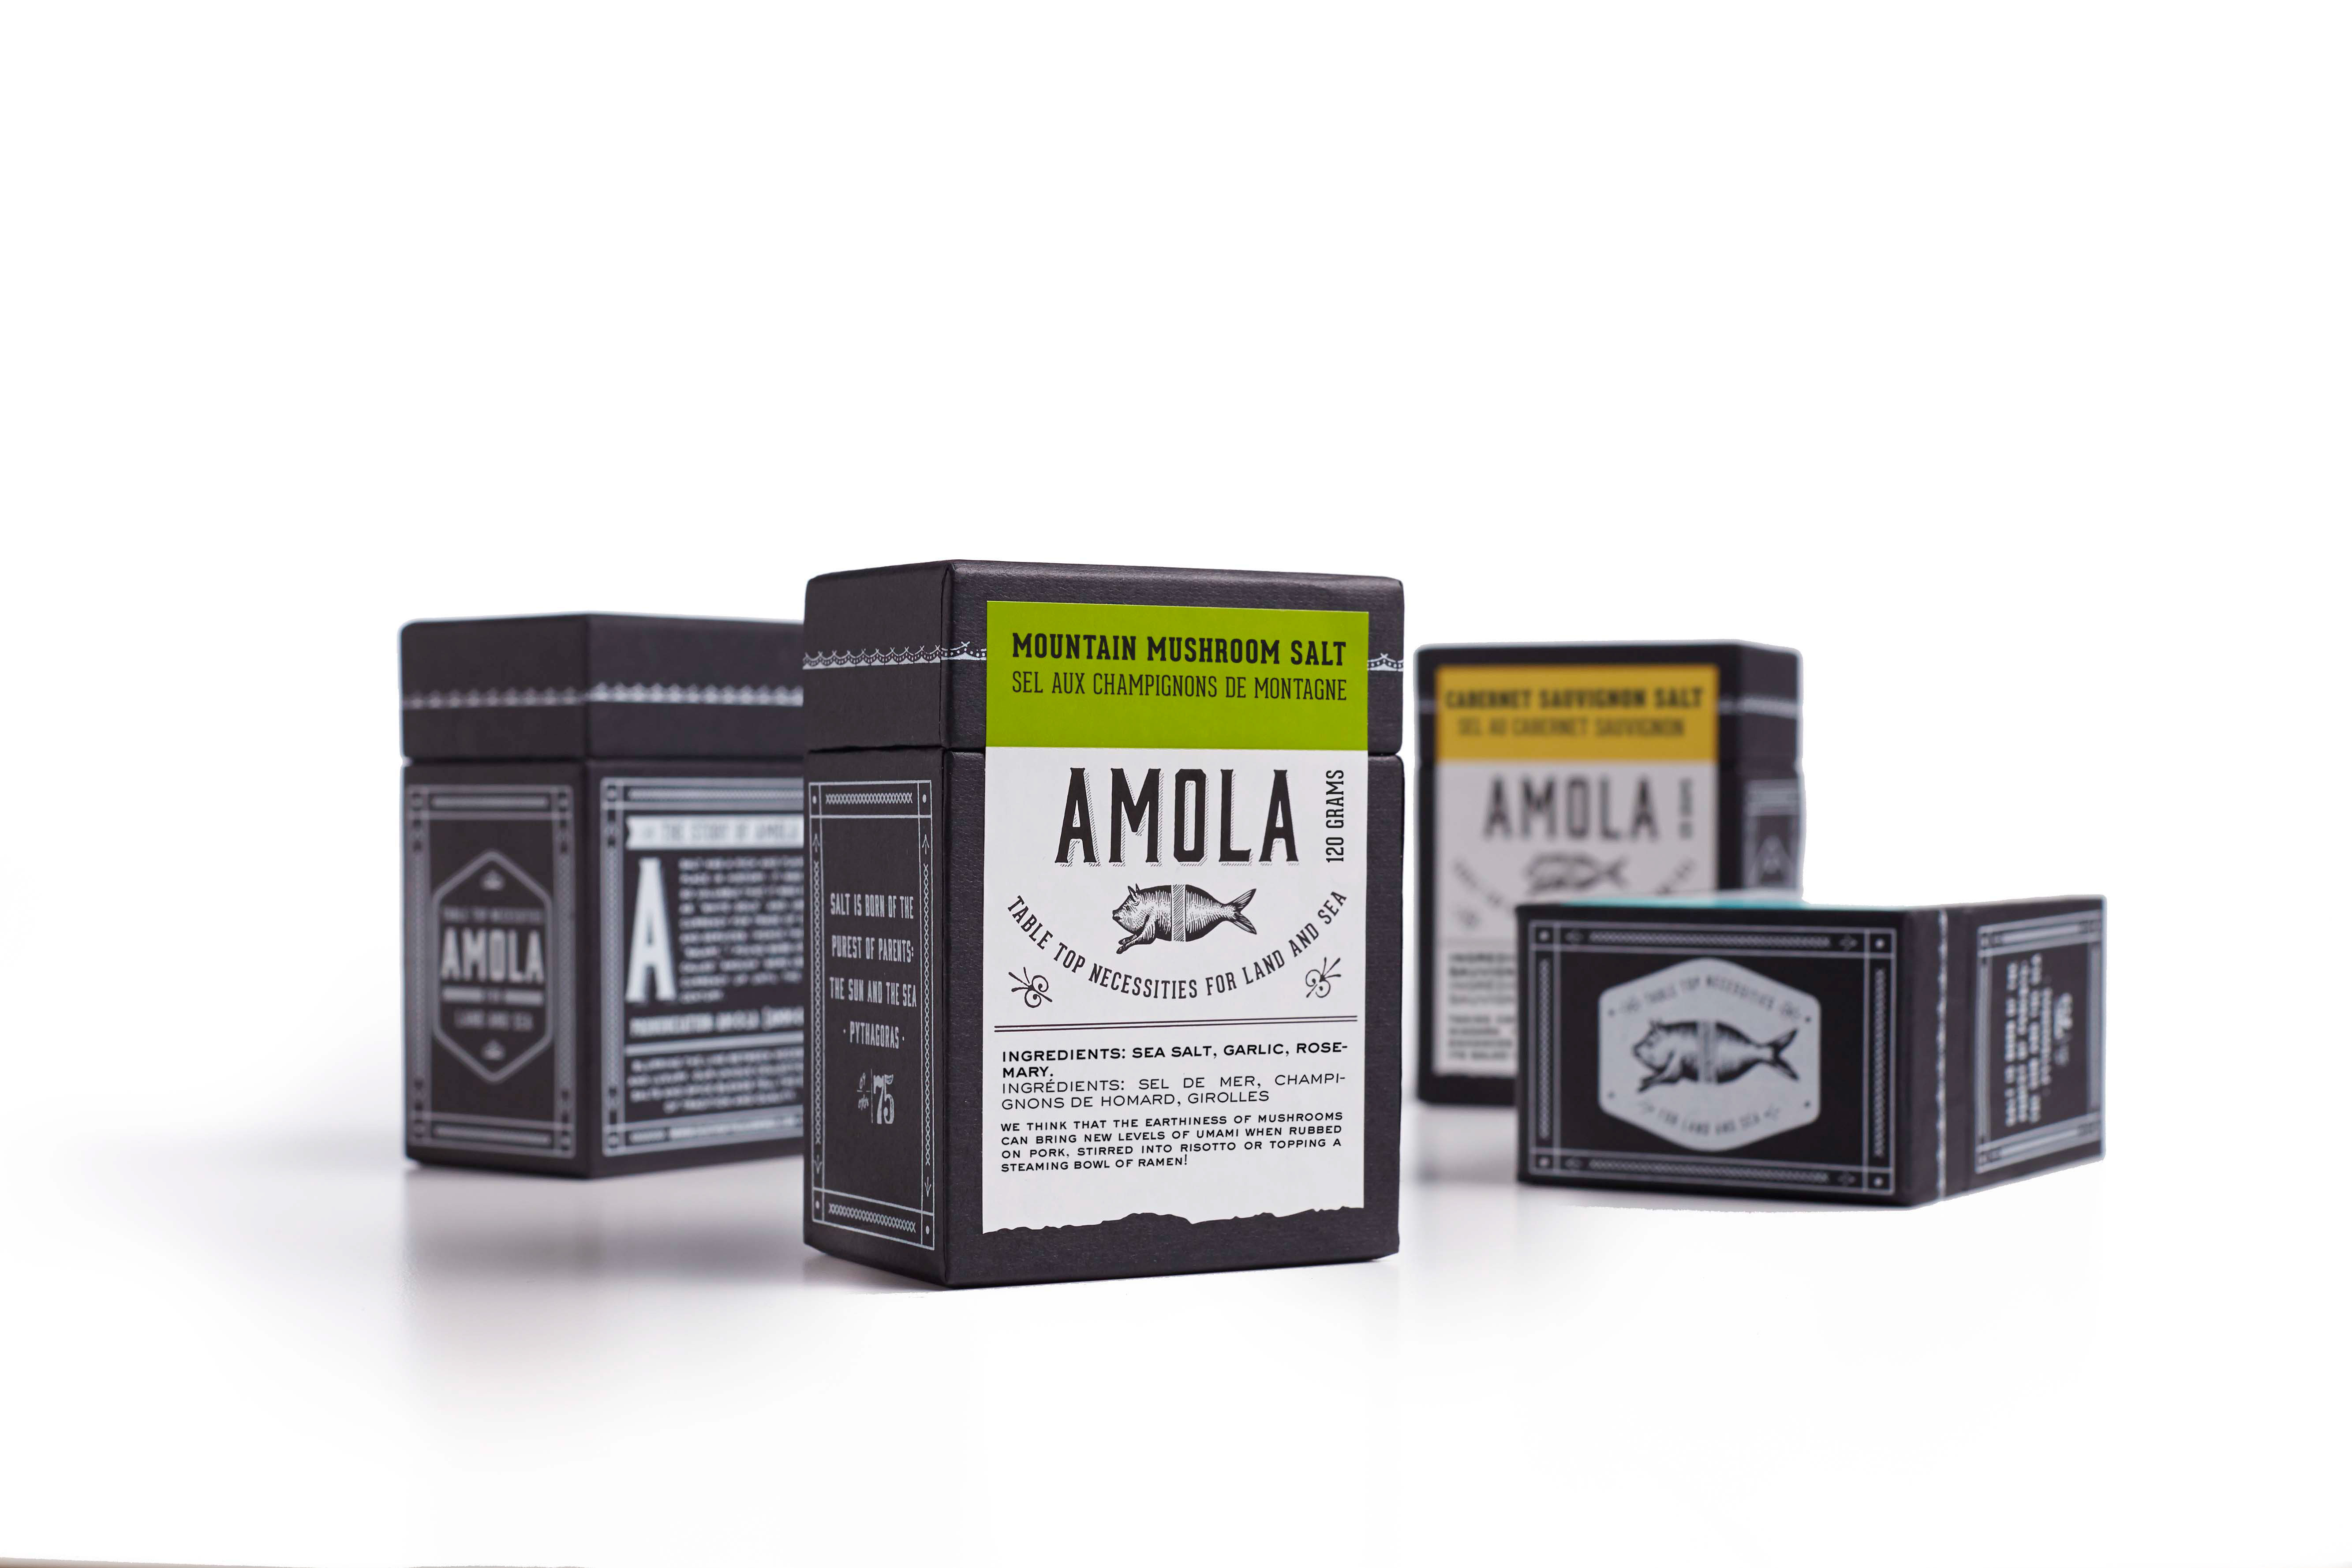 Amola Salt Rebranding & Packaging